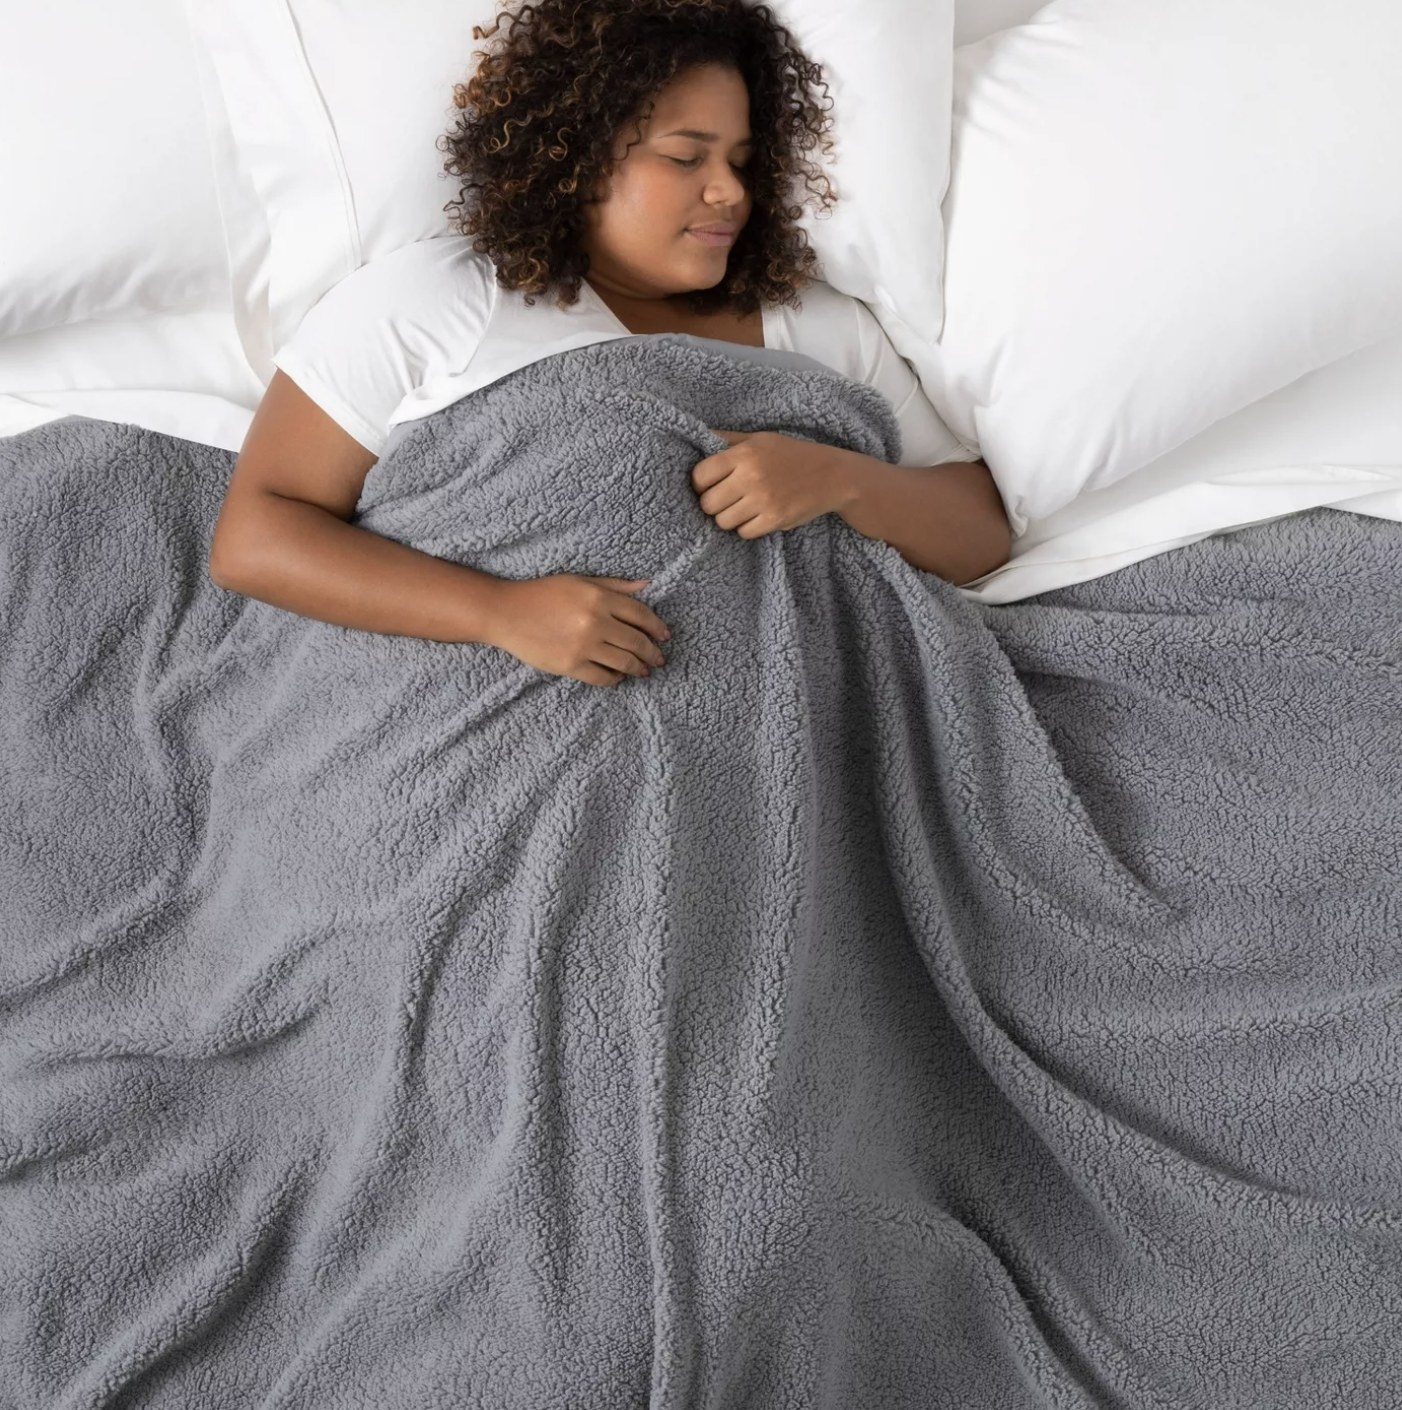 Person is laying in a grey weighted blanket on a bed